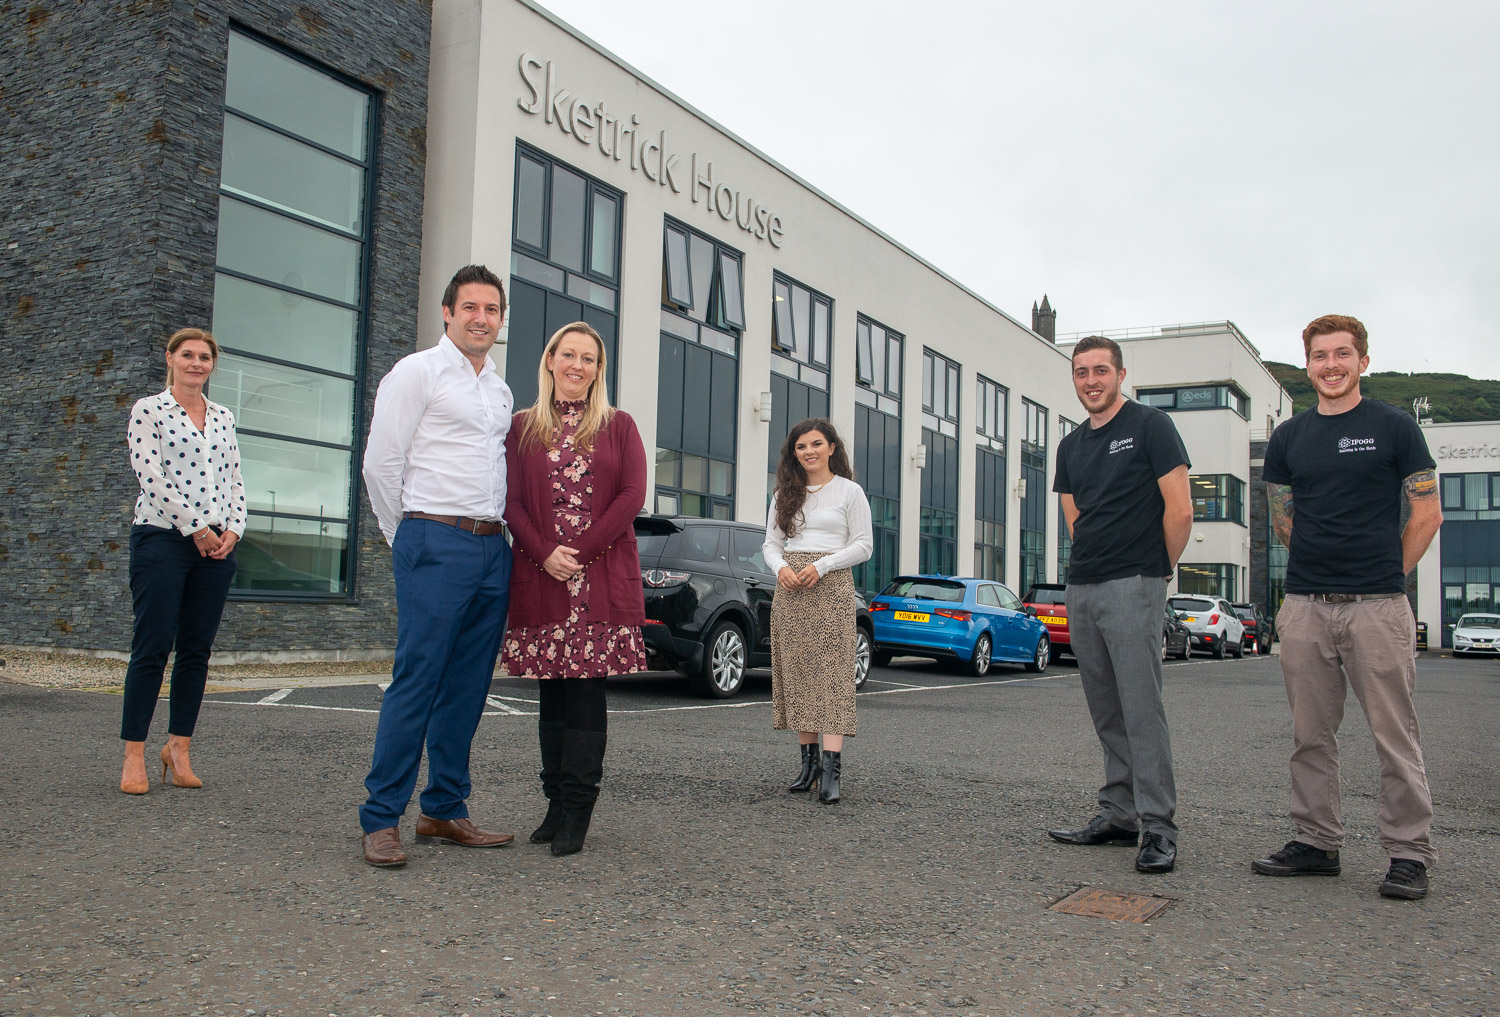 Ards Business Hub helps new companies emerging from Covid-19 pandemic